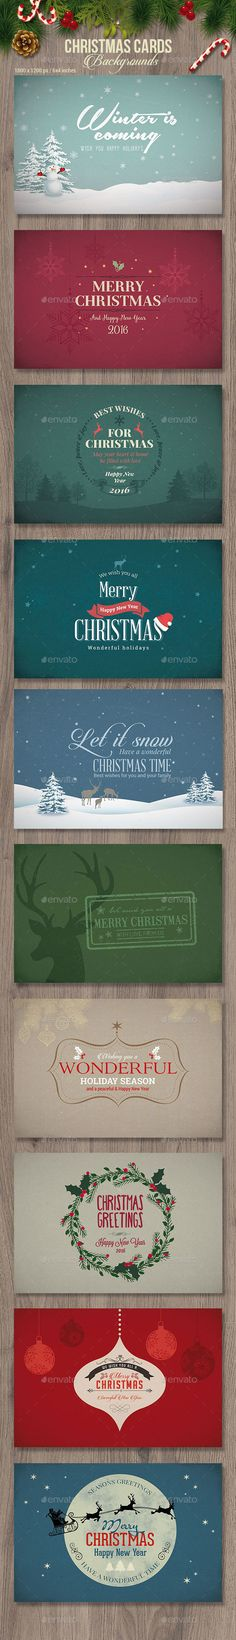 Christmas Cards / Backgrounds by corrella 10 Christmas Cards / Backgrounds PSD Features:Size: 1800px x 1200 px / 300 dpi (64 inches   0.125 inches bleedChange them to any s